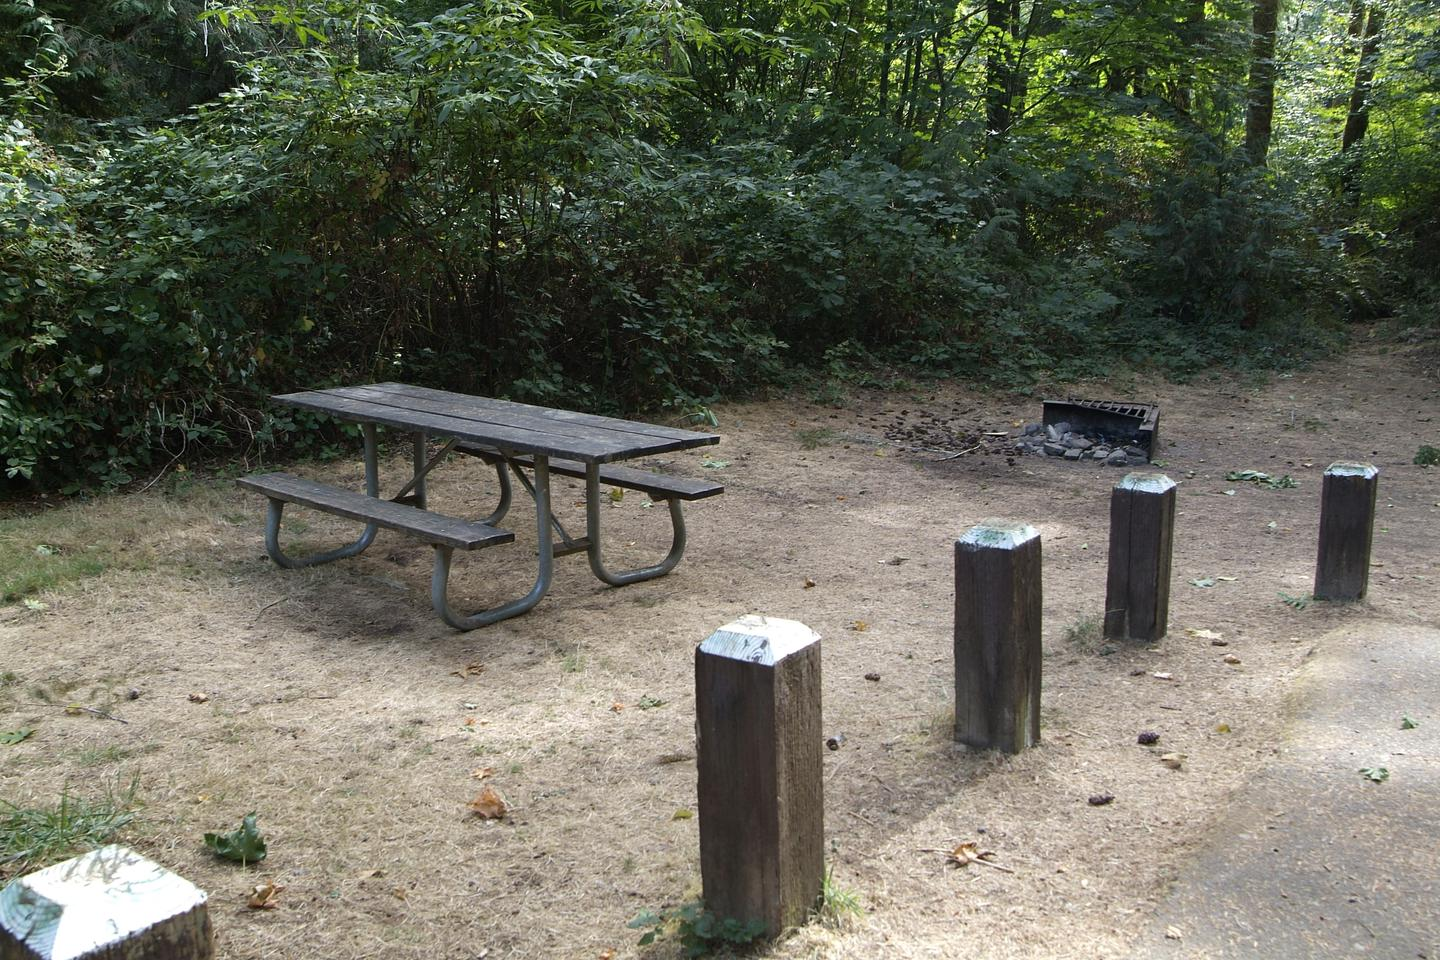 Table and fire ring for camp site 7. Camp site 7 table and fire ring.